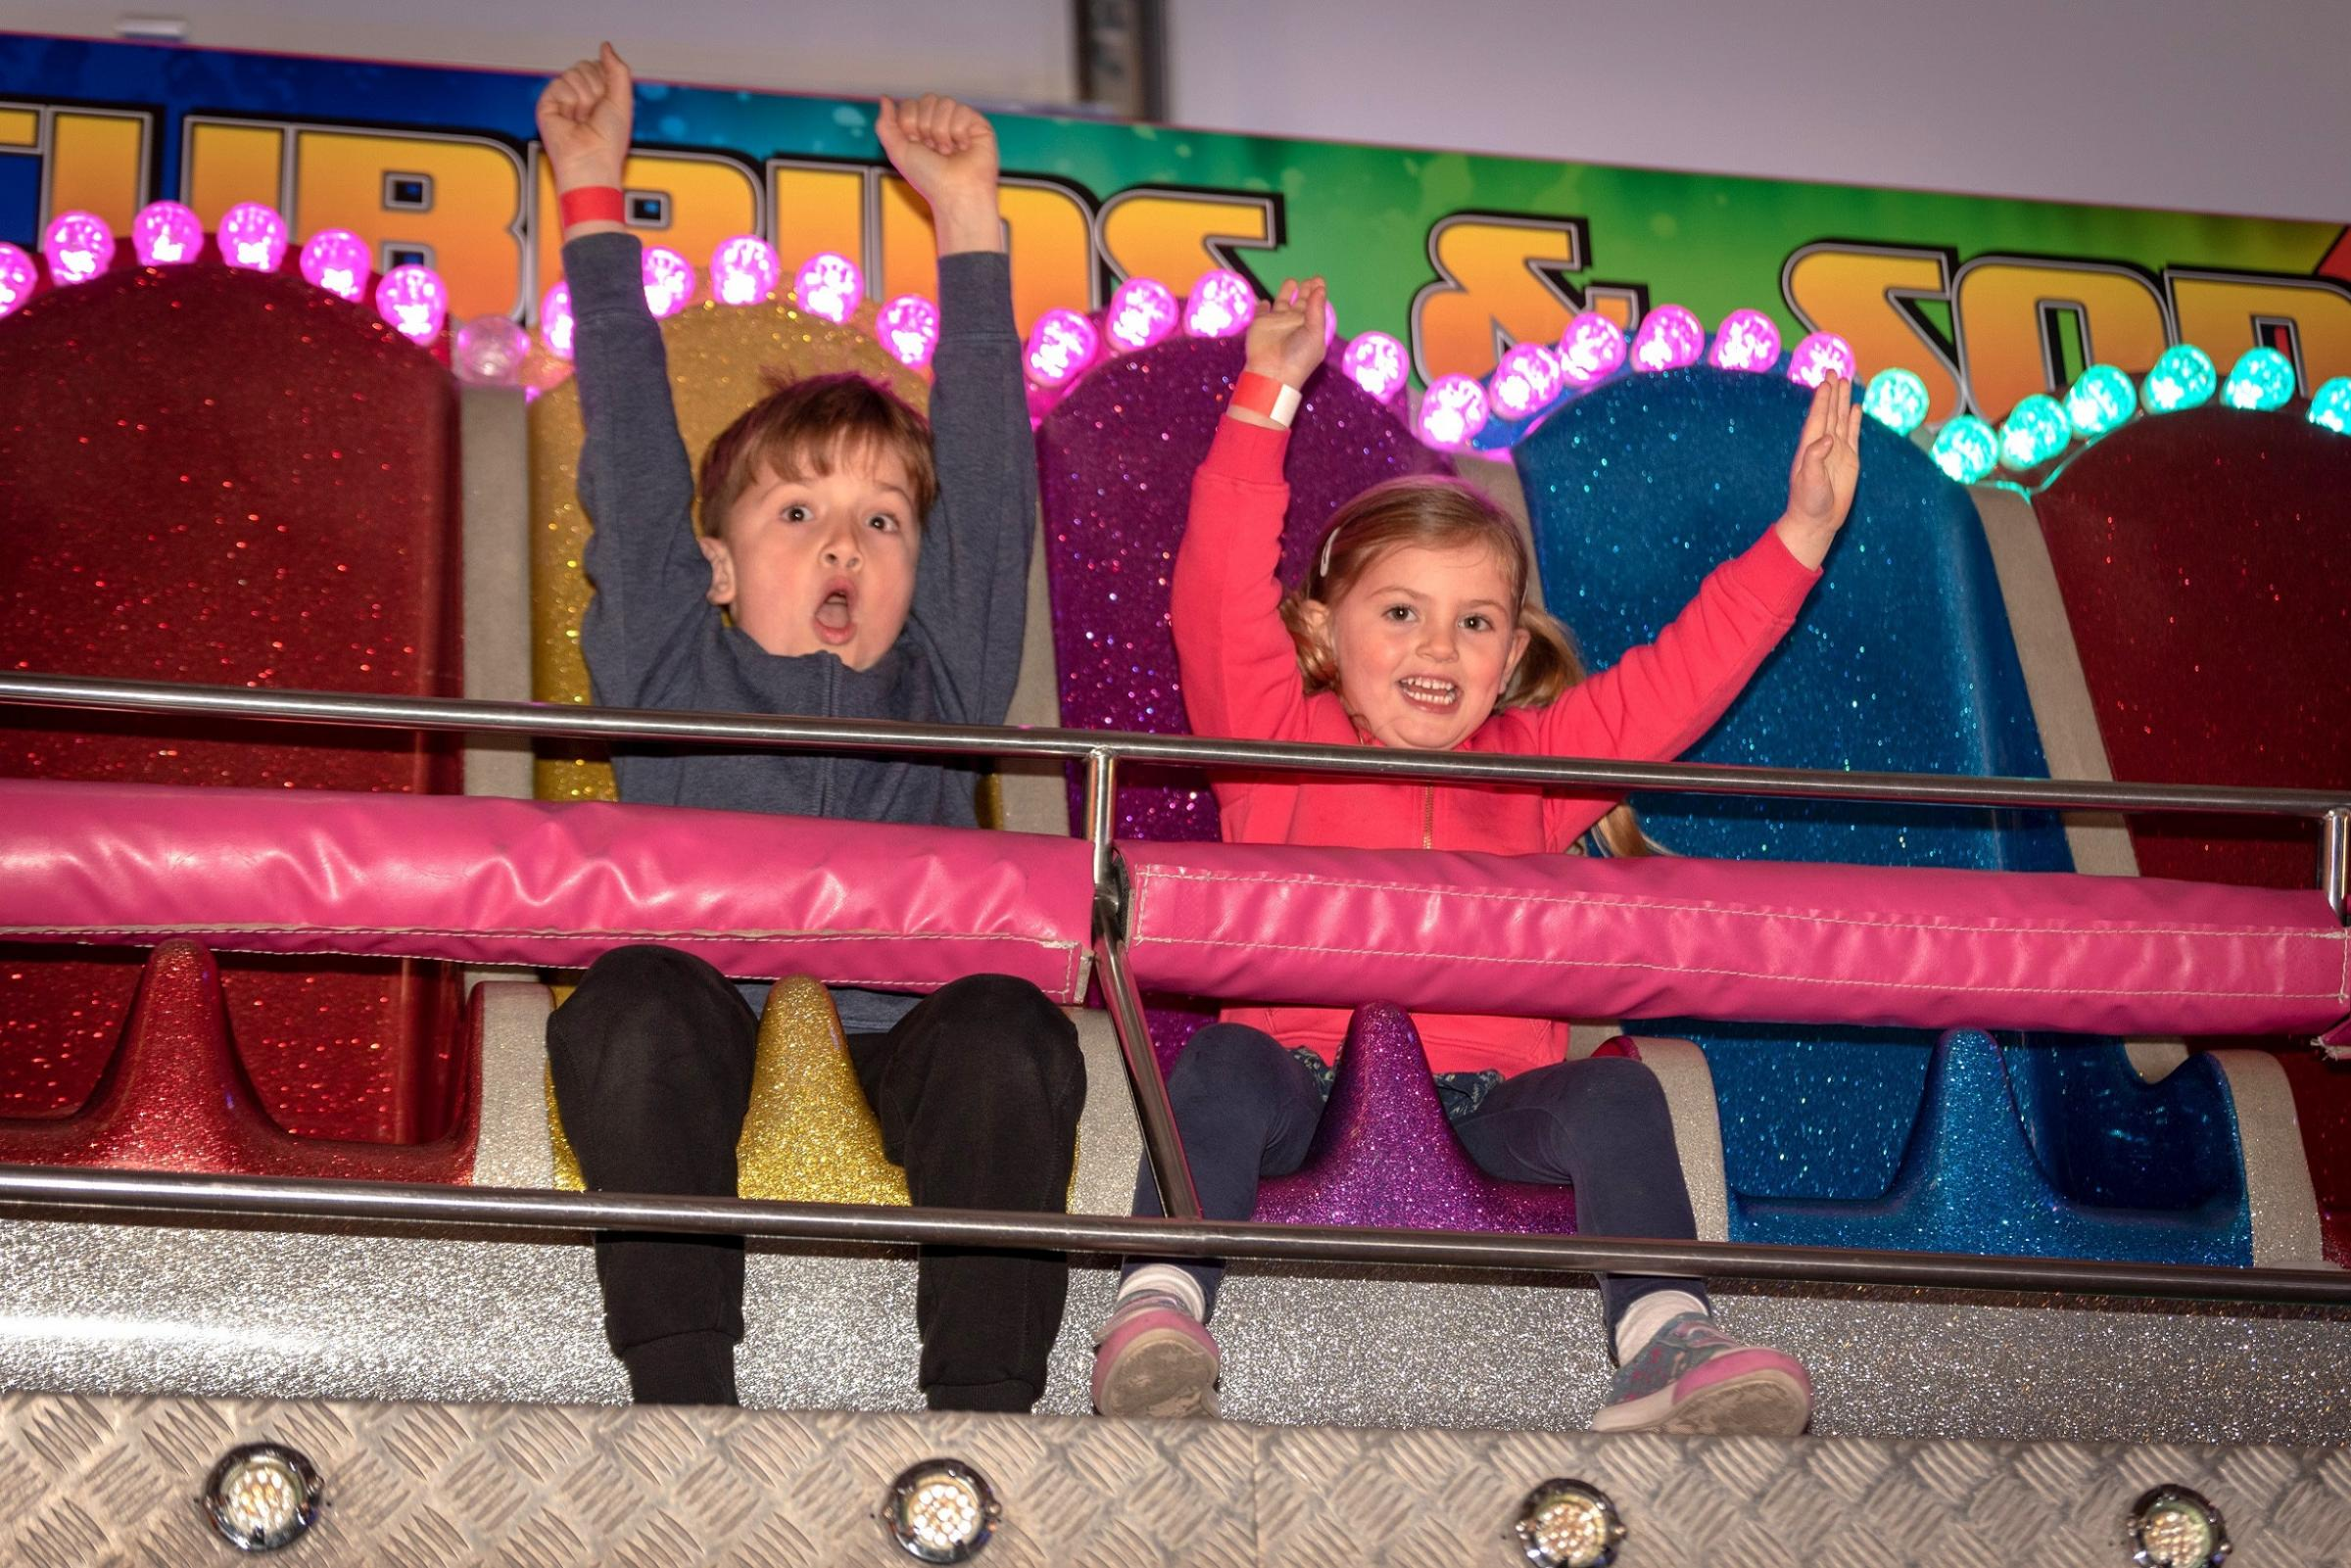 Huge indoor funfair heading for Liverpool